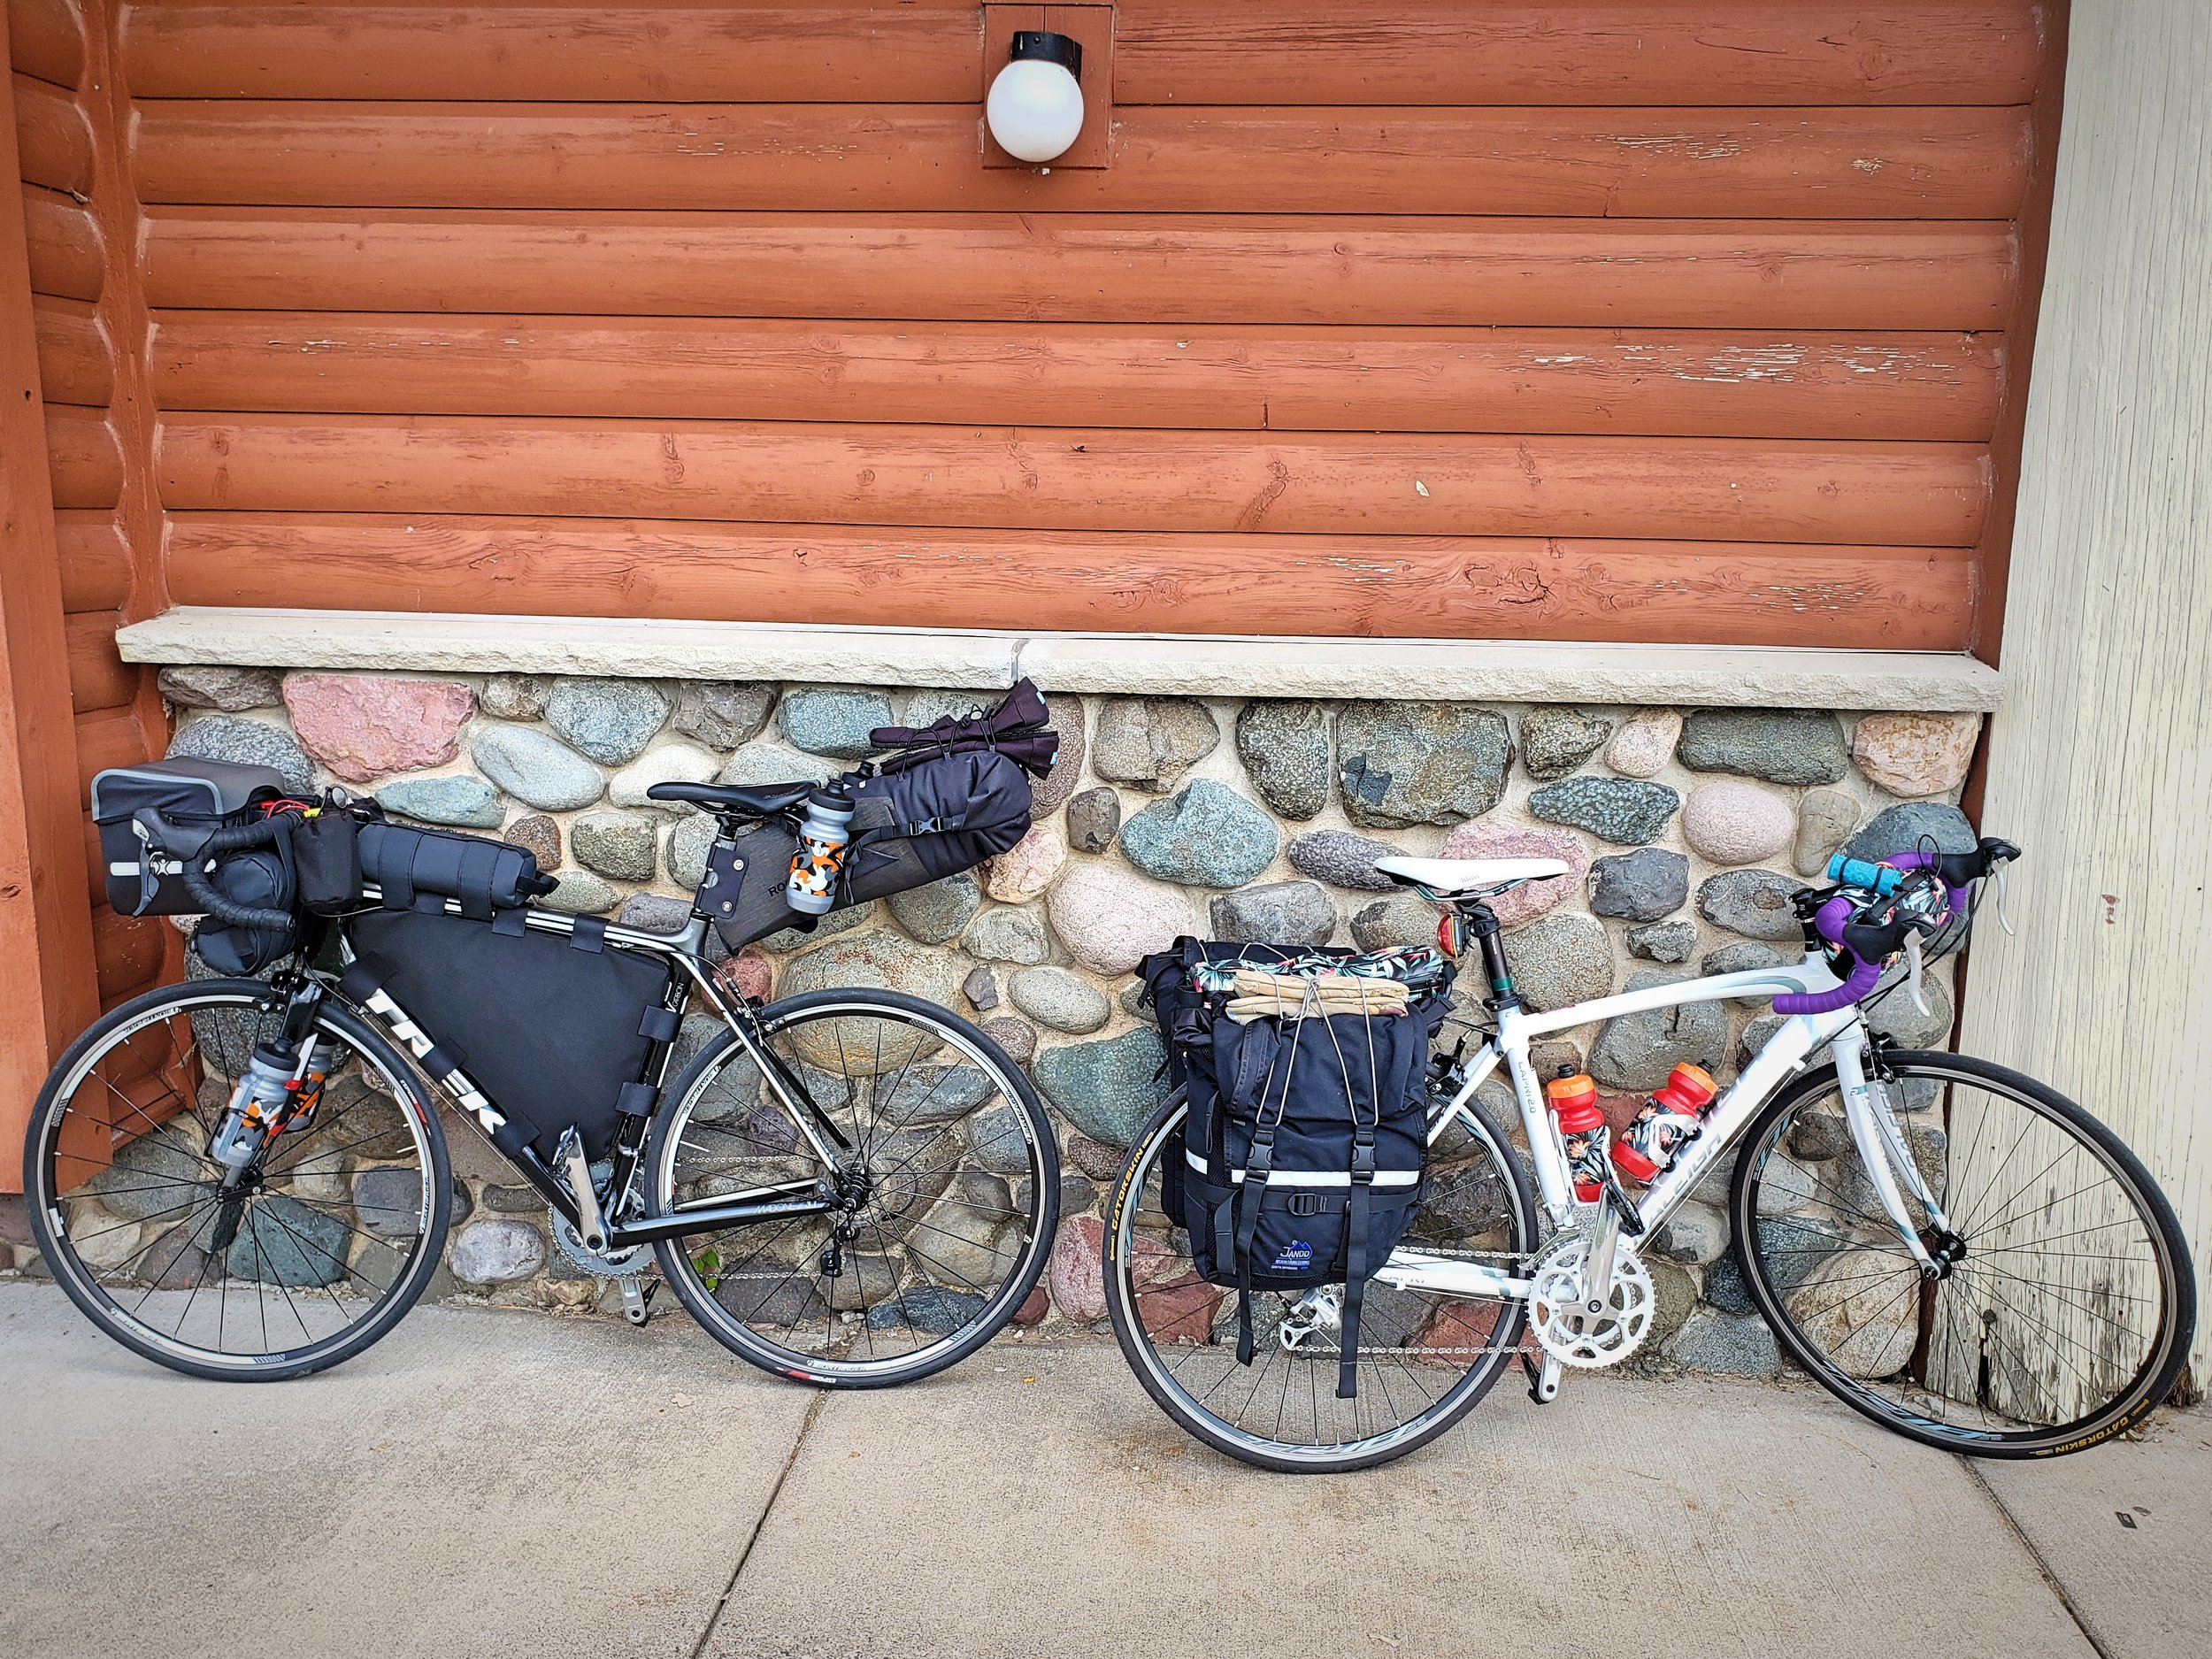 Ian uses his frame pack in combination with 7 other bag…yes, 7 other bags. His bike looks insane compared to mine.